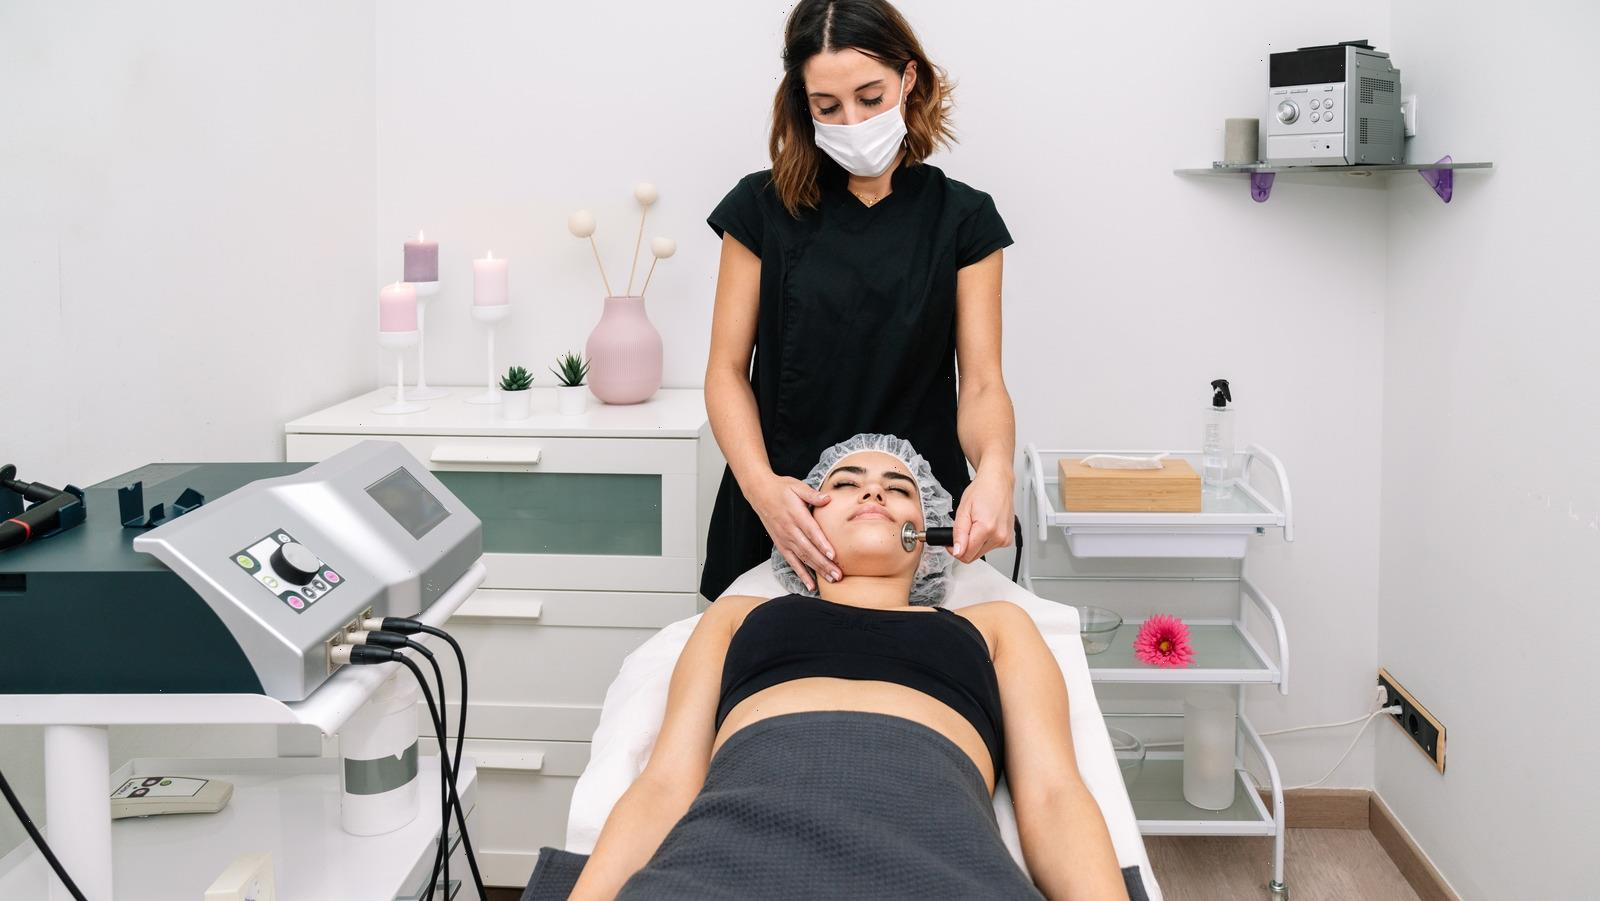 Aesthetician Vs. Esthetician: What's The Difference?